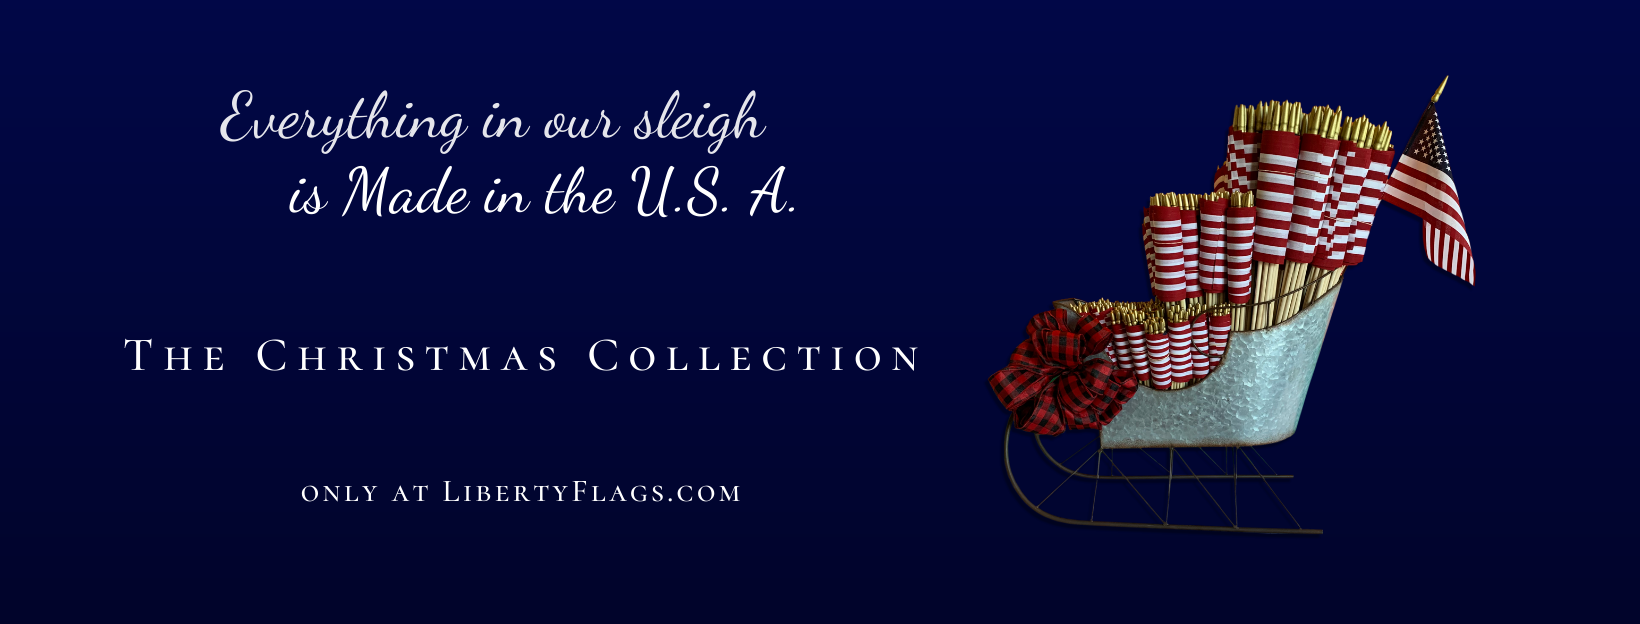 The Christmas Collection from LIBERTY FLAGS, The American Wave®